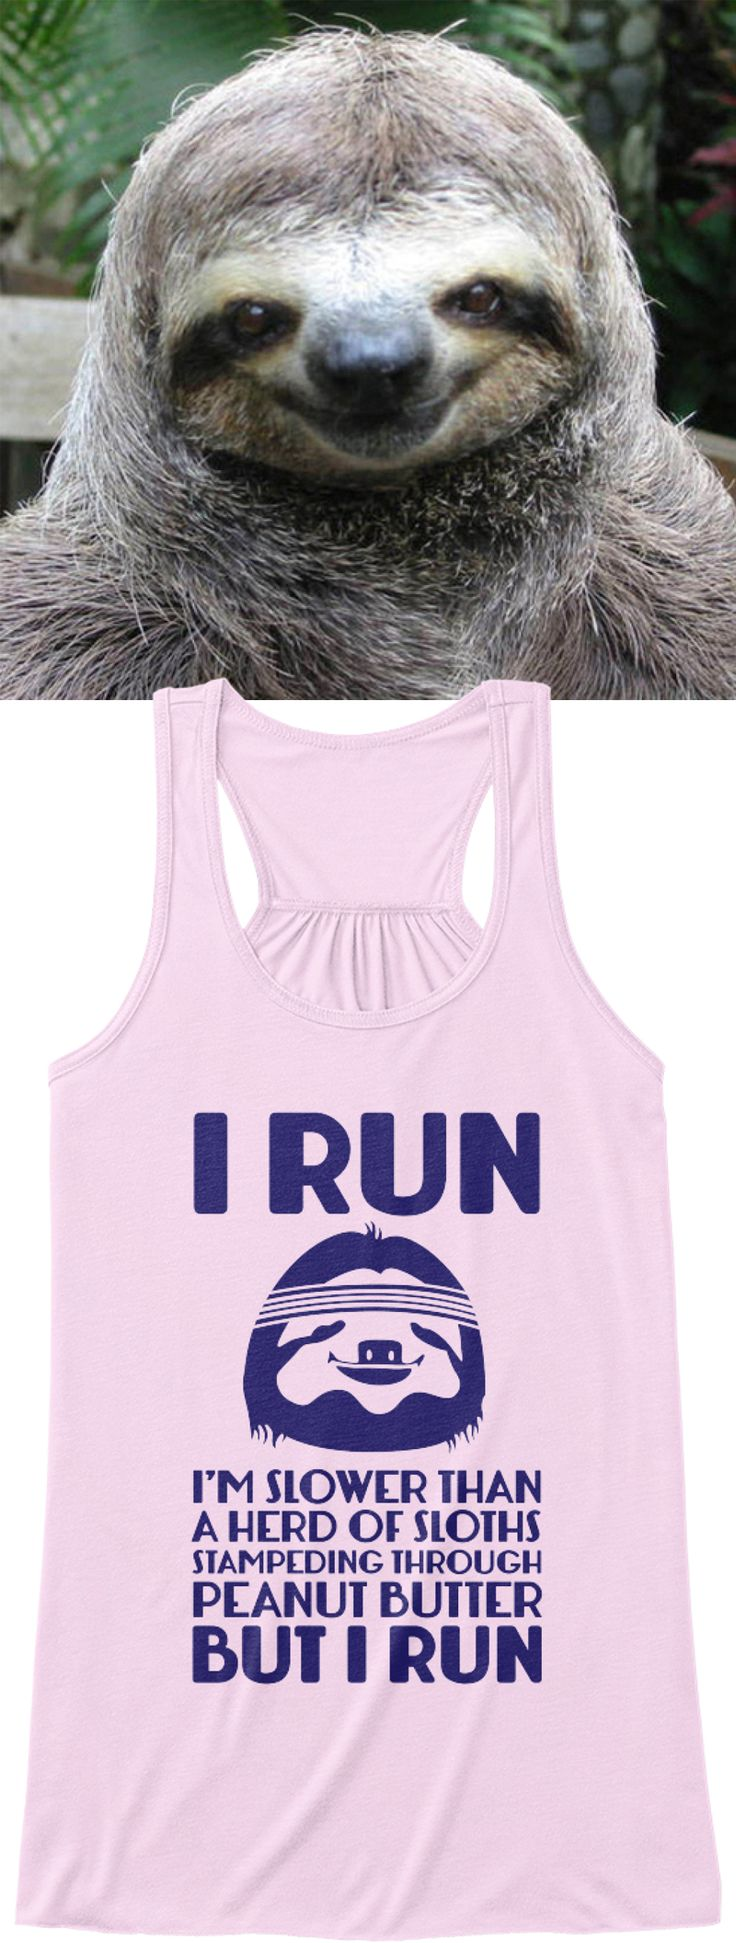 Shirt funny women quotes quotesgram - I M Slower Than A Heard Of Sloths Stampeding Through Peanut Butter But I Run